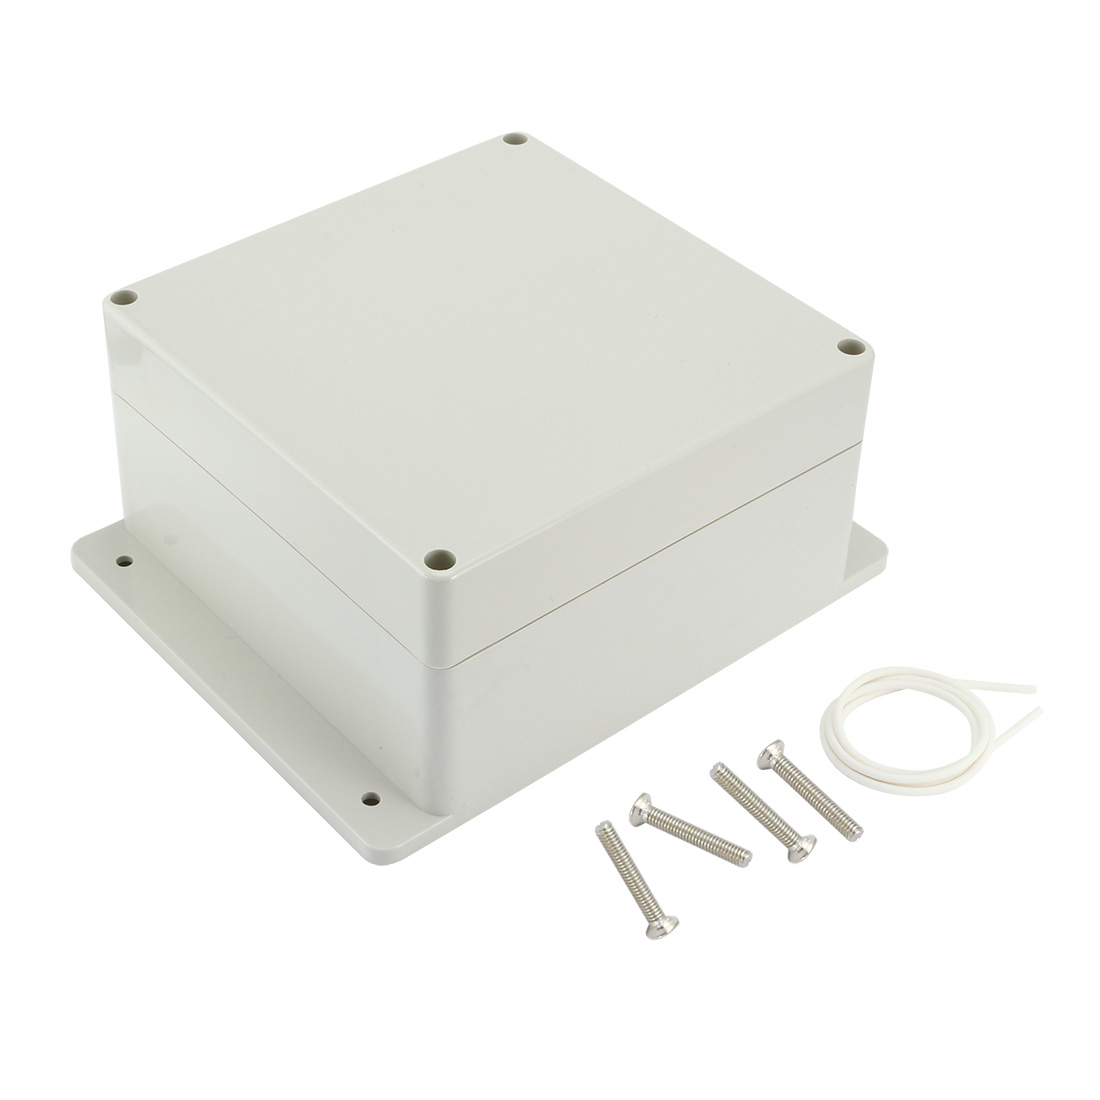 "6.3""x6.3""x3.54""(160mmx160mmx90mm) ABS Junction Box Universal Electric Project Enclosure"